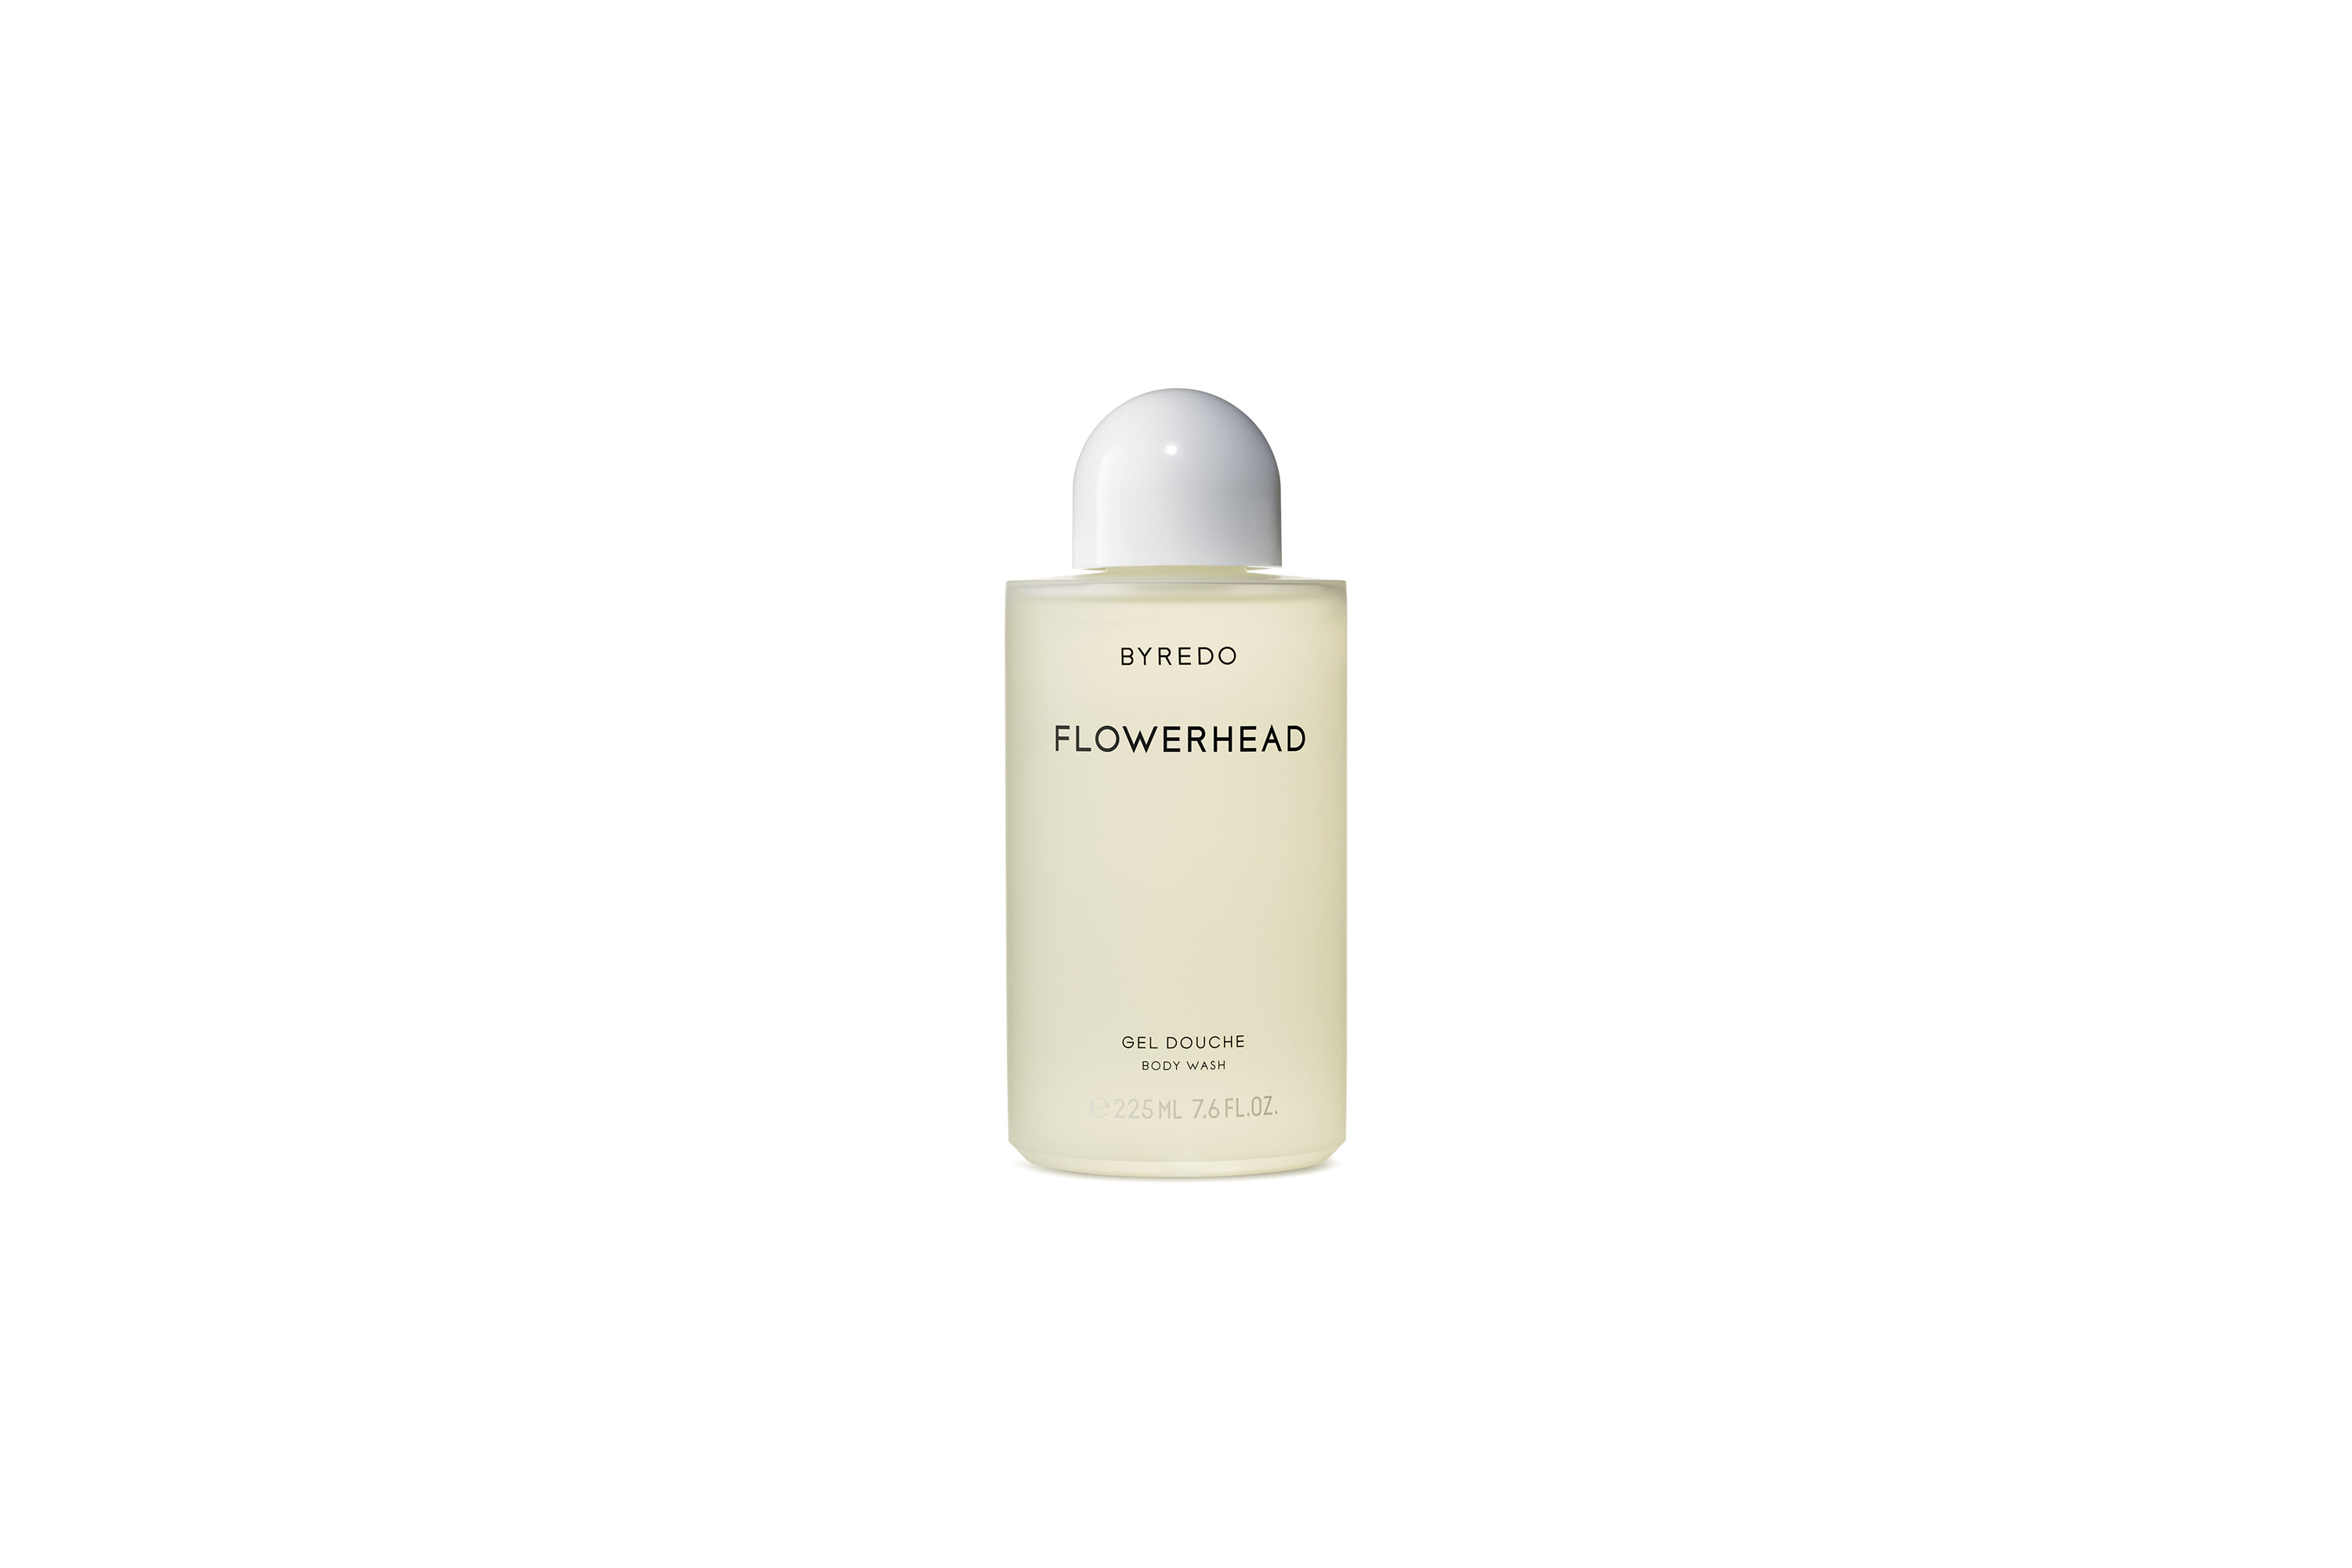 Flowerhead Body Wash 225 ml